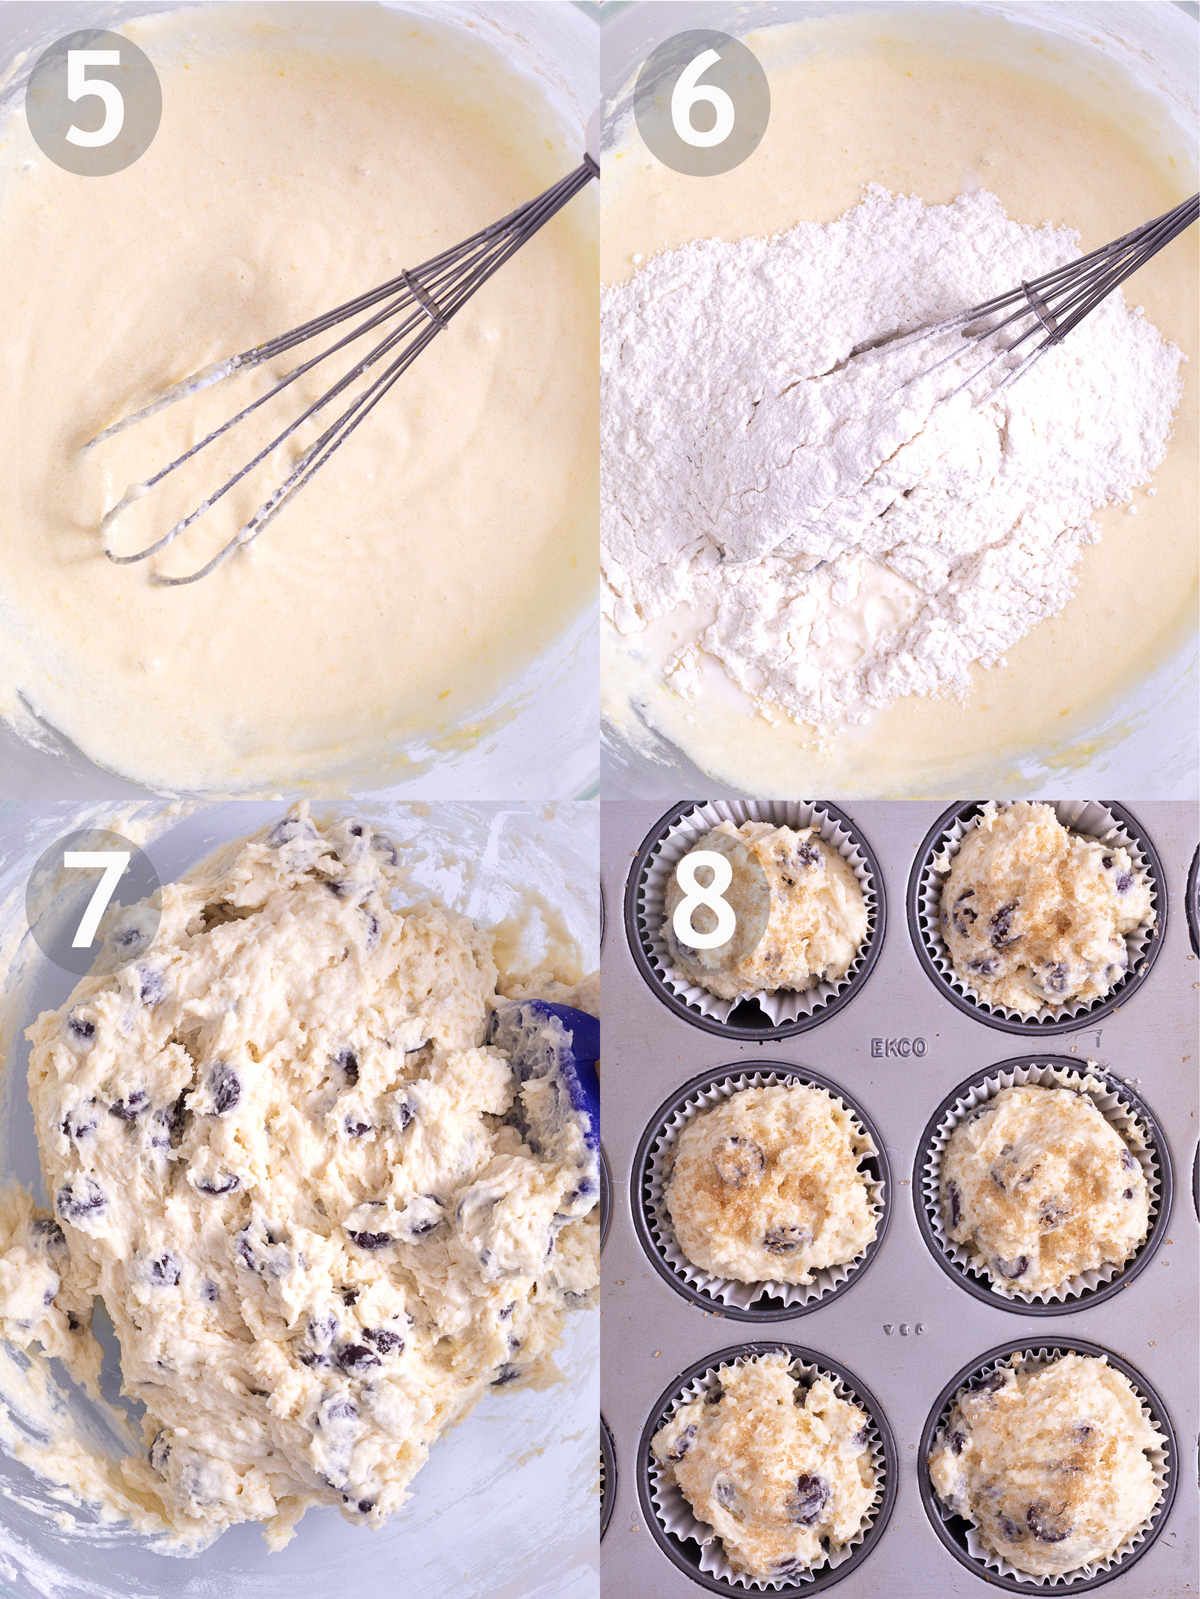 Last 4 steps to make chocolate chip muffins including, mixing all wet ingredients, adding dry ingredients and chocolate chip and scooping batter into baking tin.